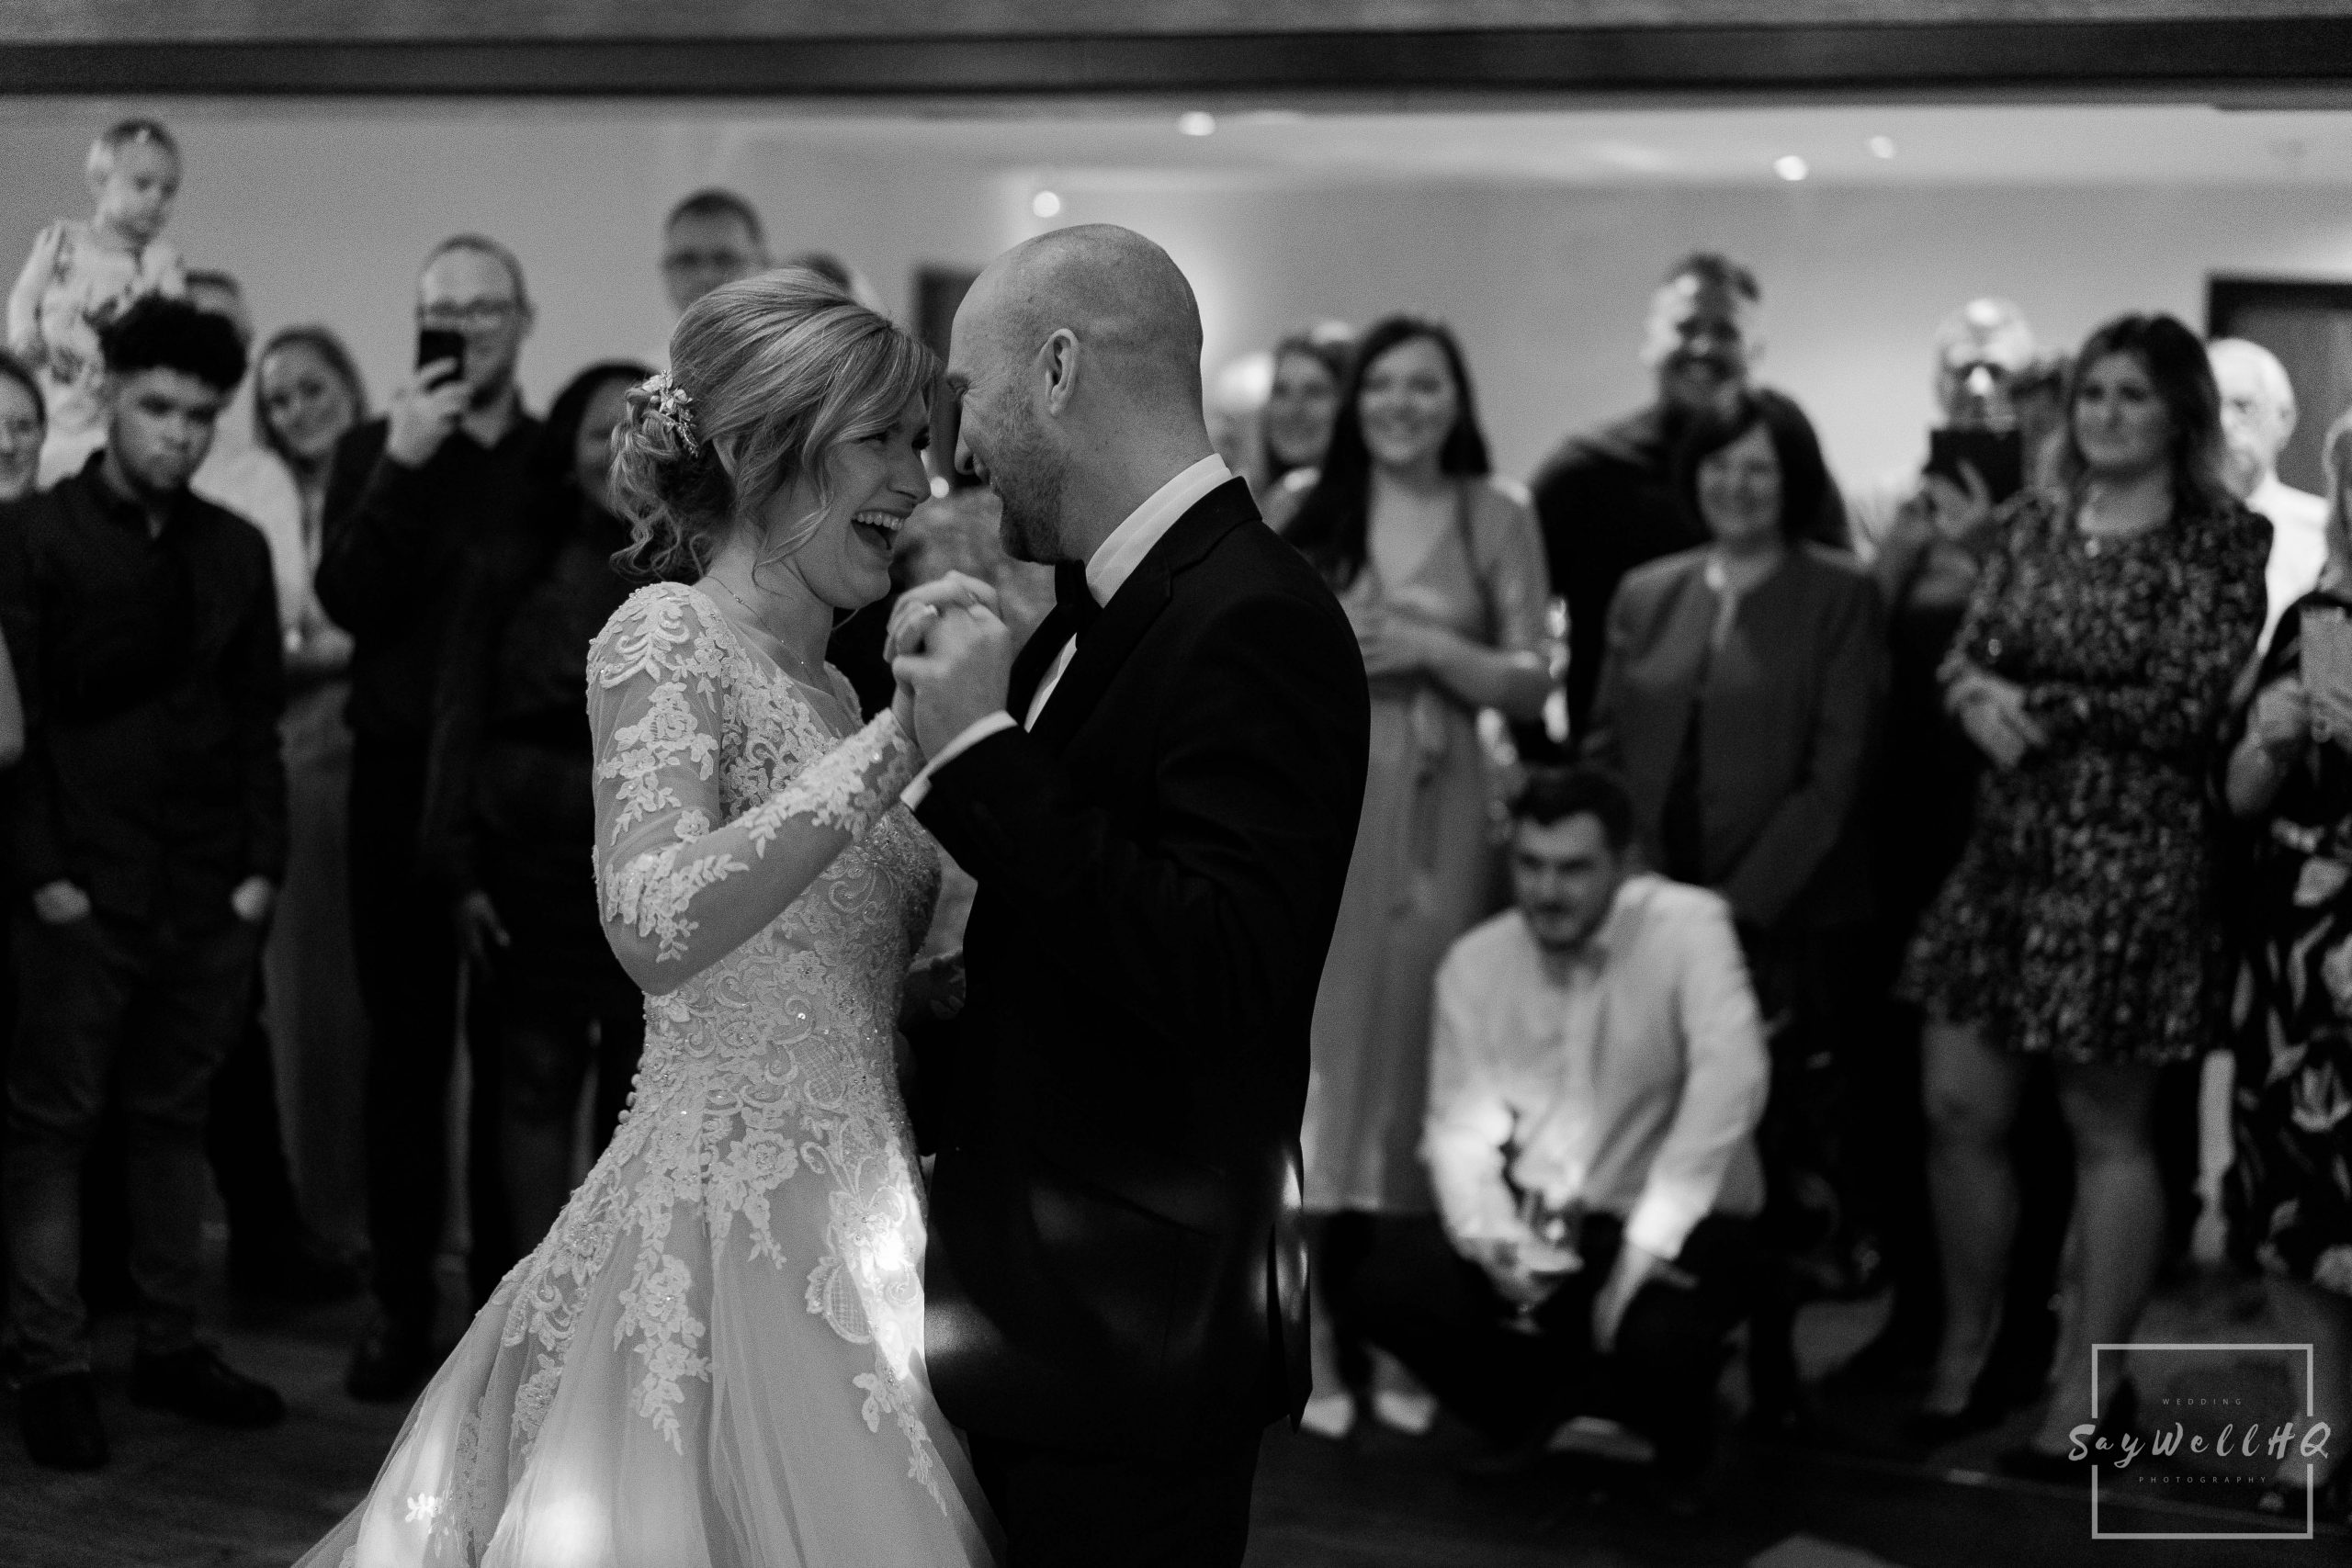 Bride and groom dancing during their first dance at their Goosedale wedding - Wedding Photography by goosedale wedding photographer Andy Saywell of SaywellHQ